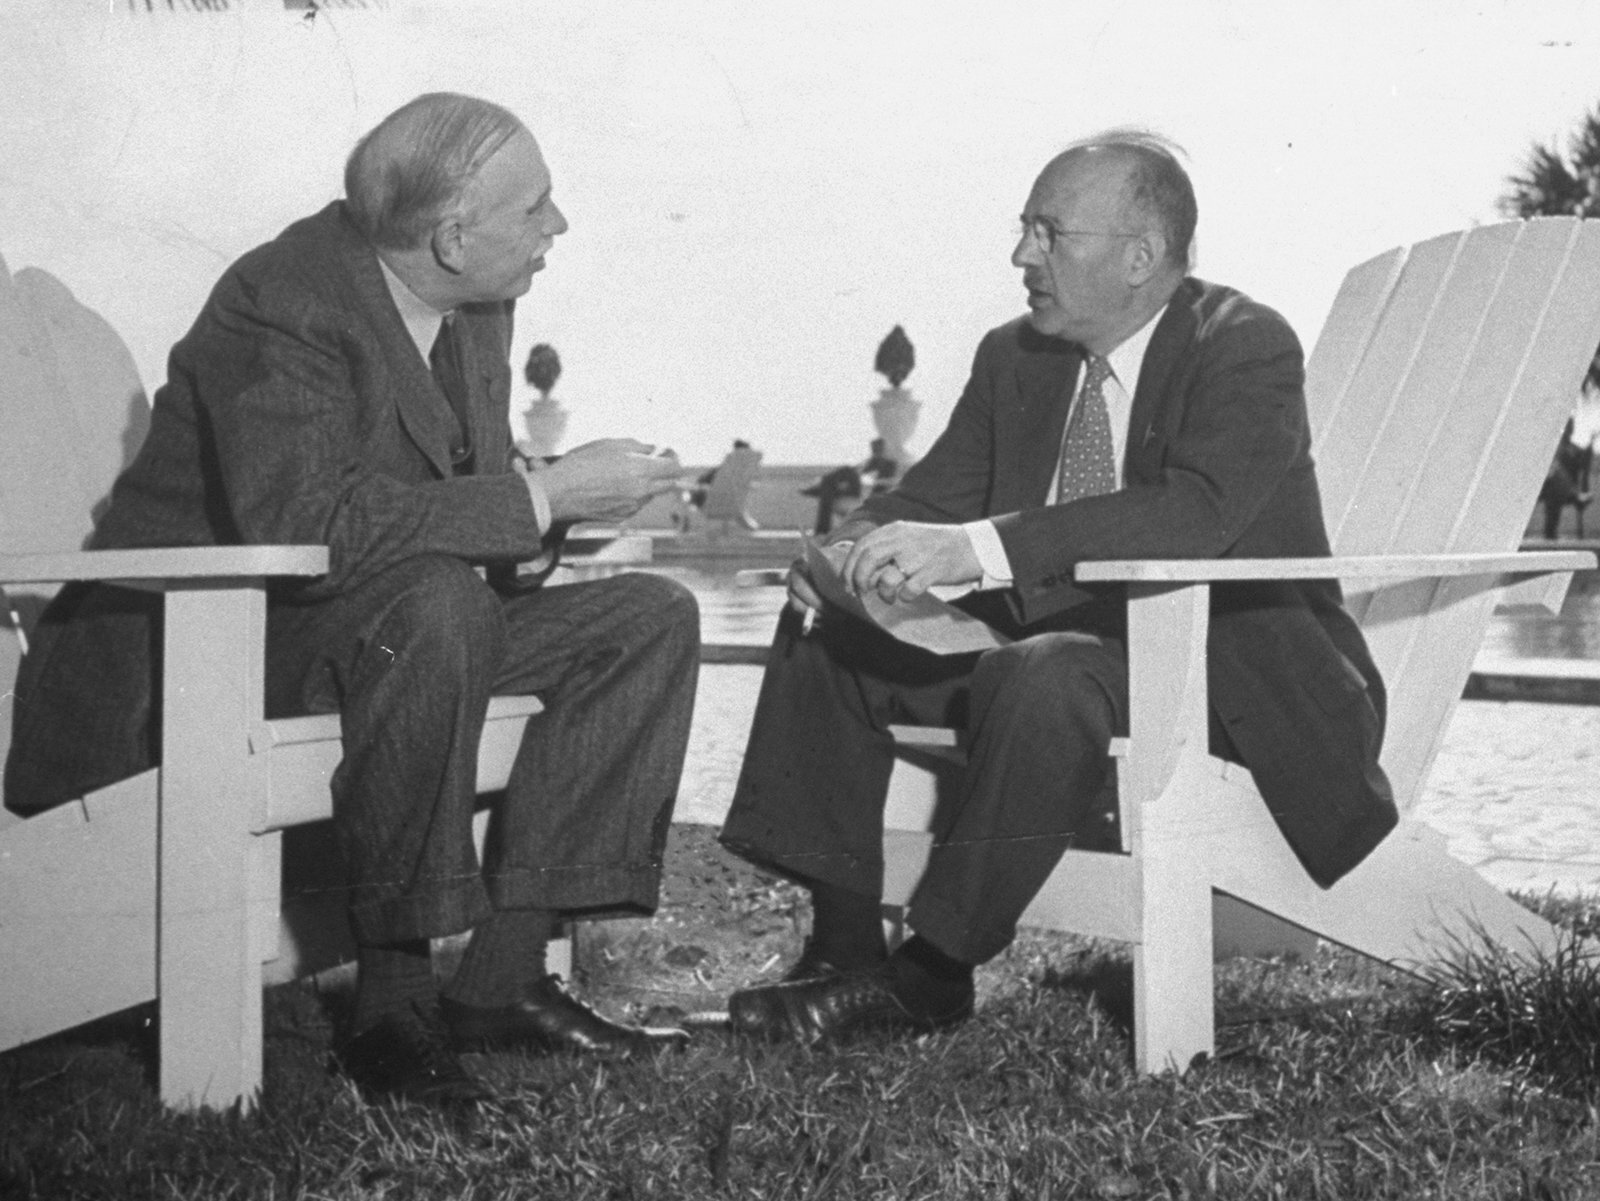 Keynes and White, Bretton Woods (Thomas D. McAvoy, Life Collection)